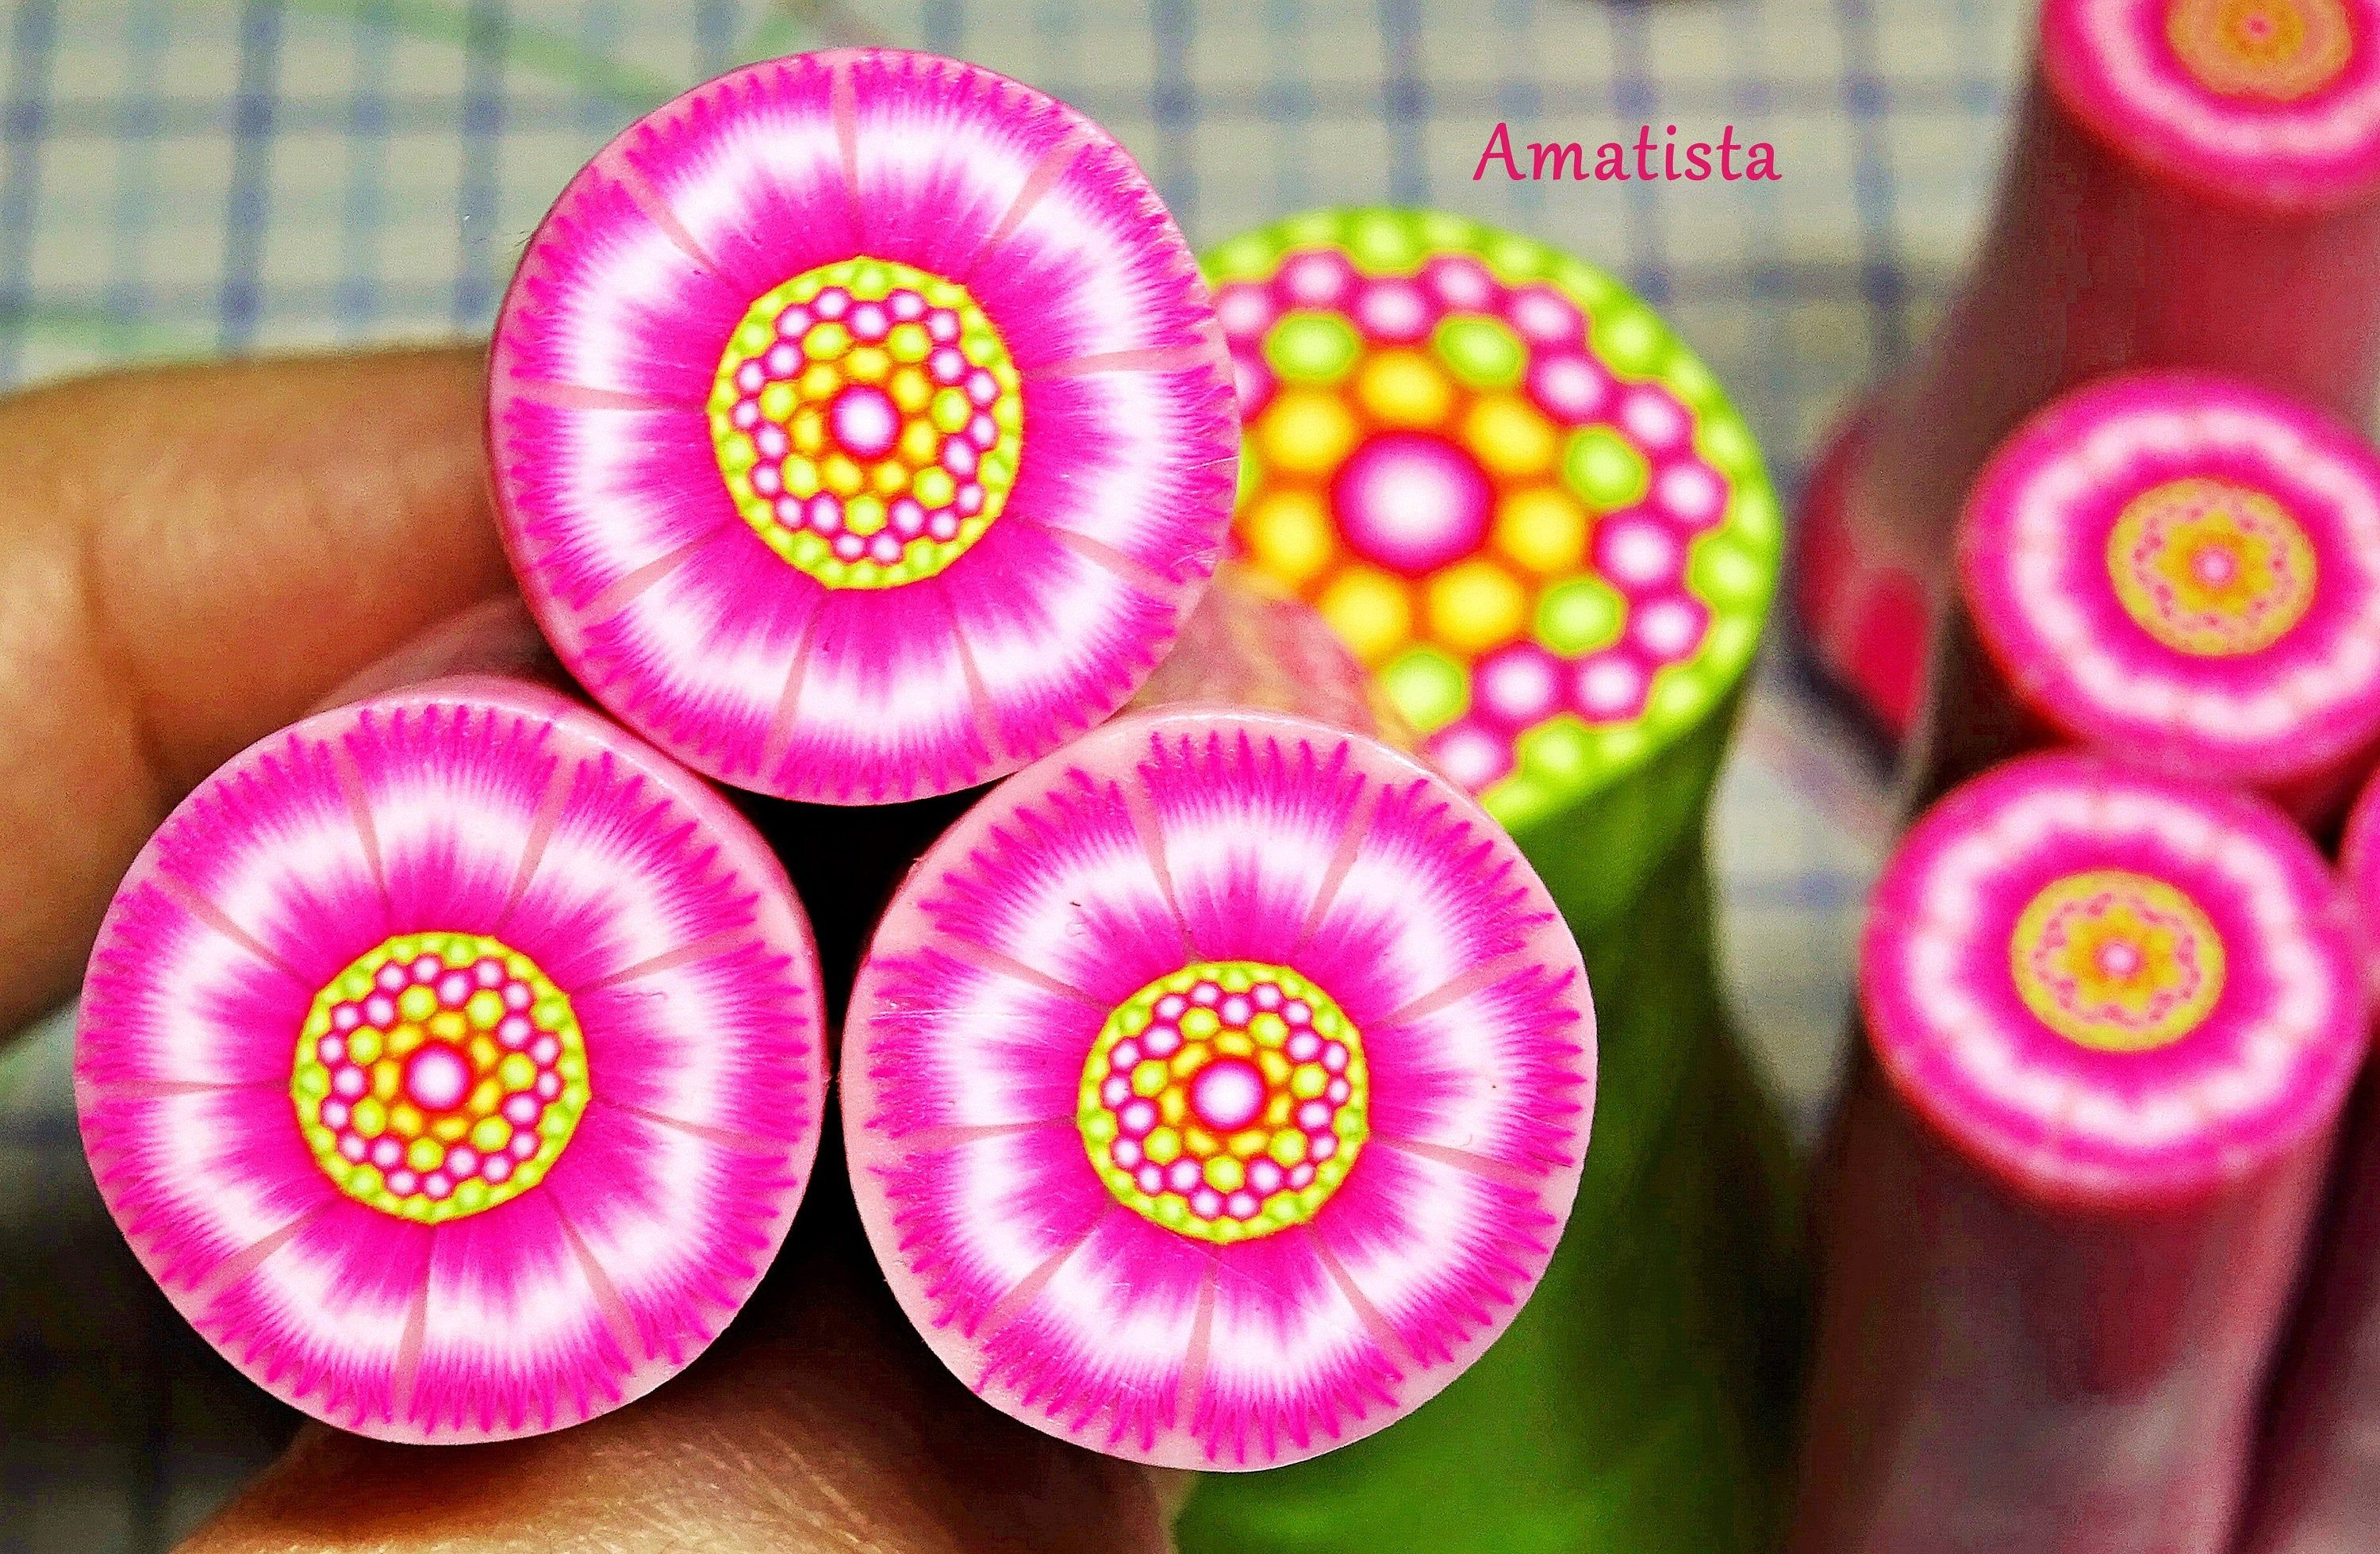 Polymer clay flower cane: Raw polymer clay cane – Millefiori cane supplies – Fuchsia flower cane – Supplies for jewelers